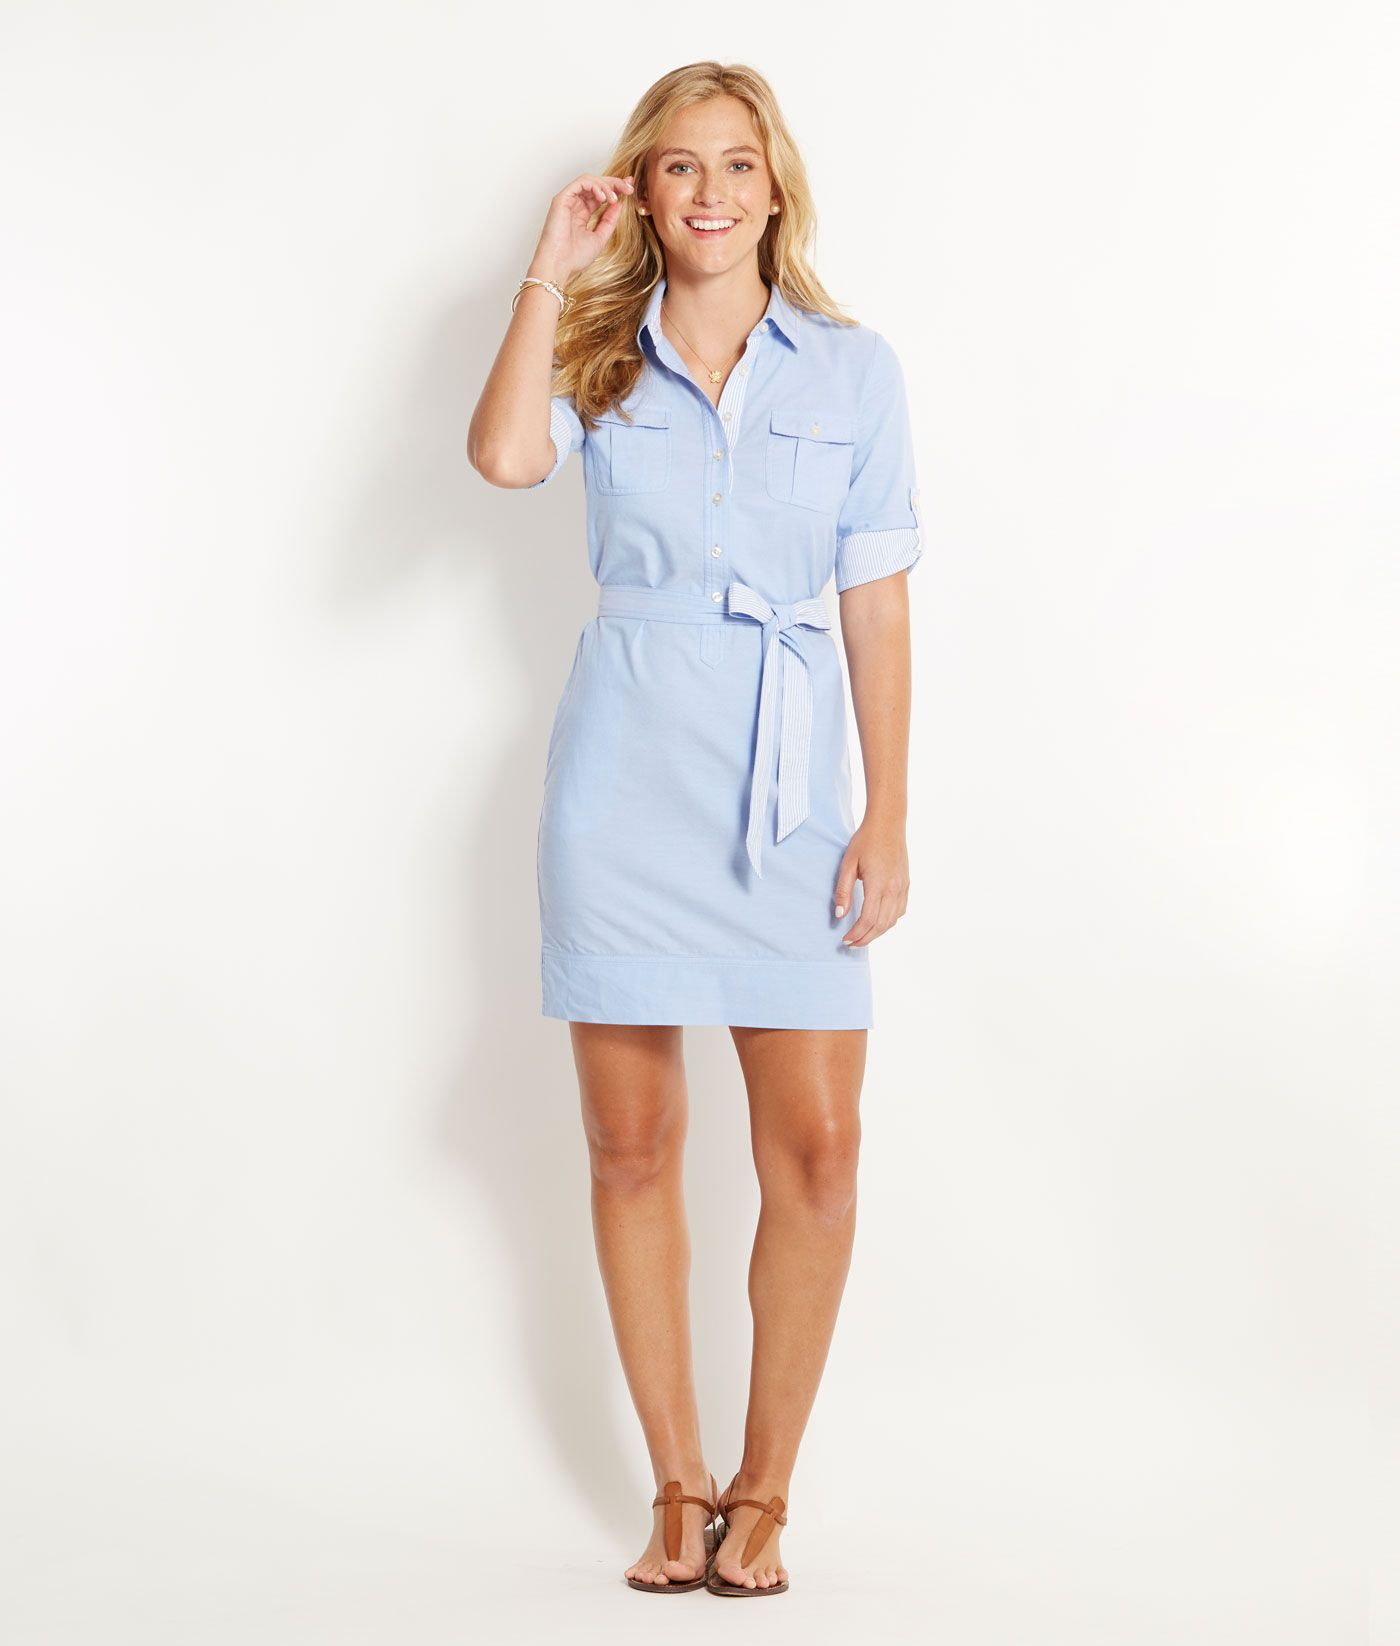 check out great varieties where can i buy Shop Dresses: Oxford Shirt Dress for Women | Vineyard Vines ...